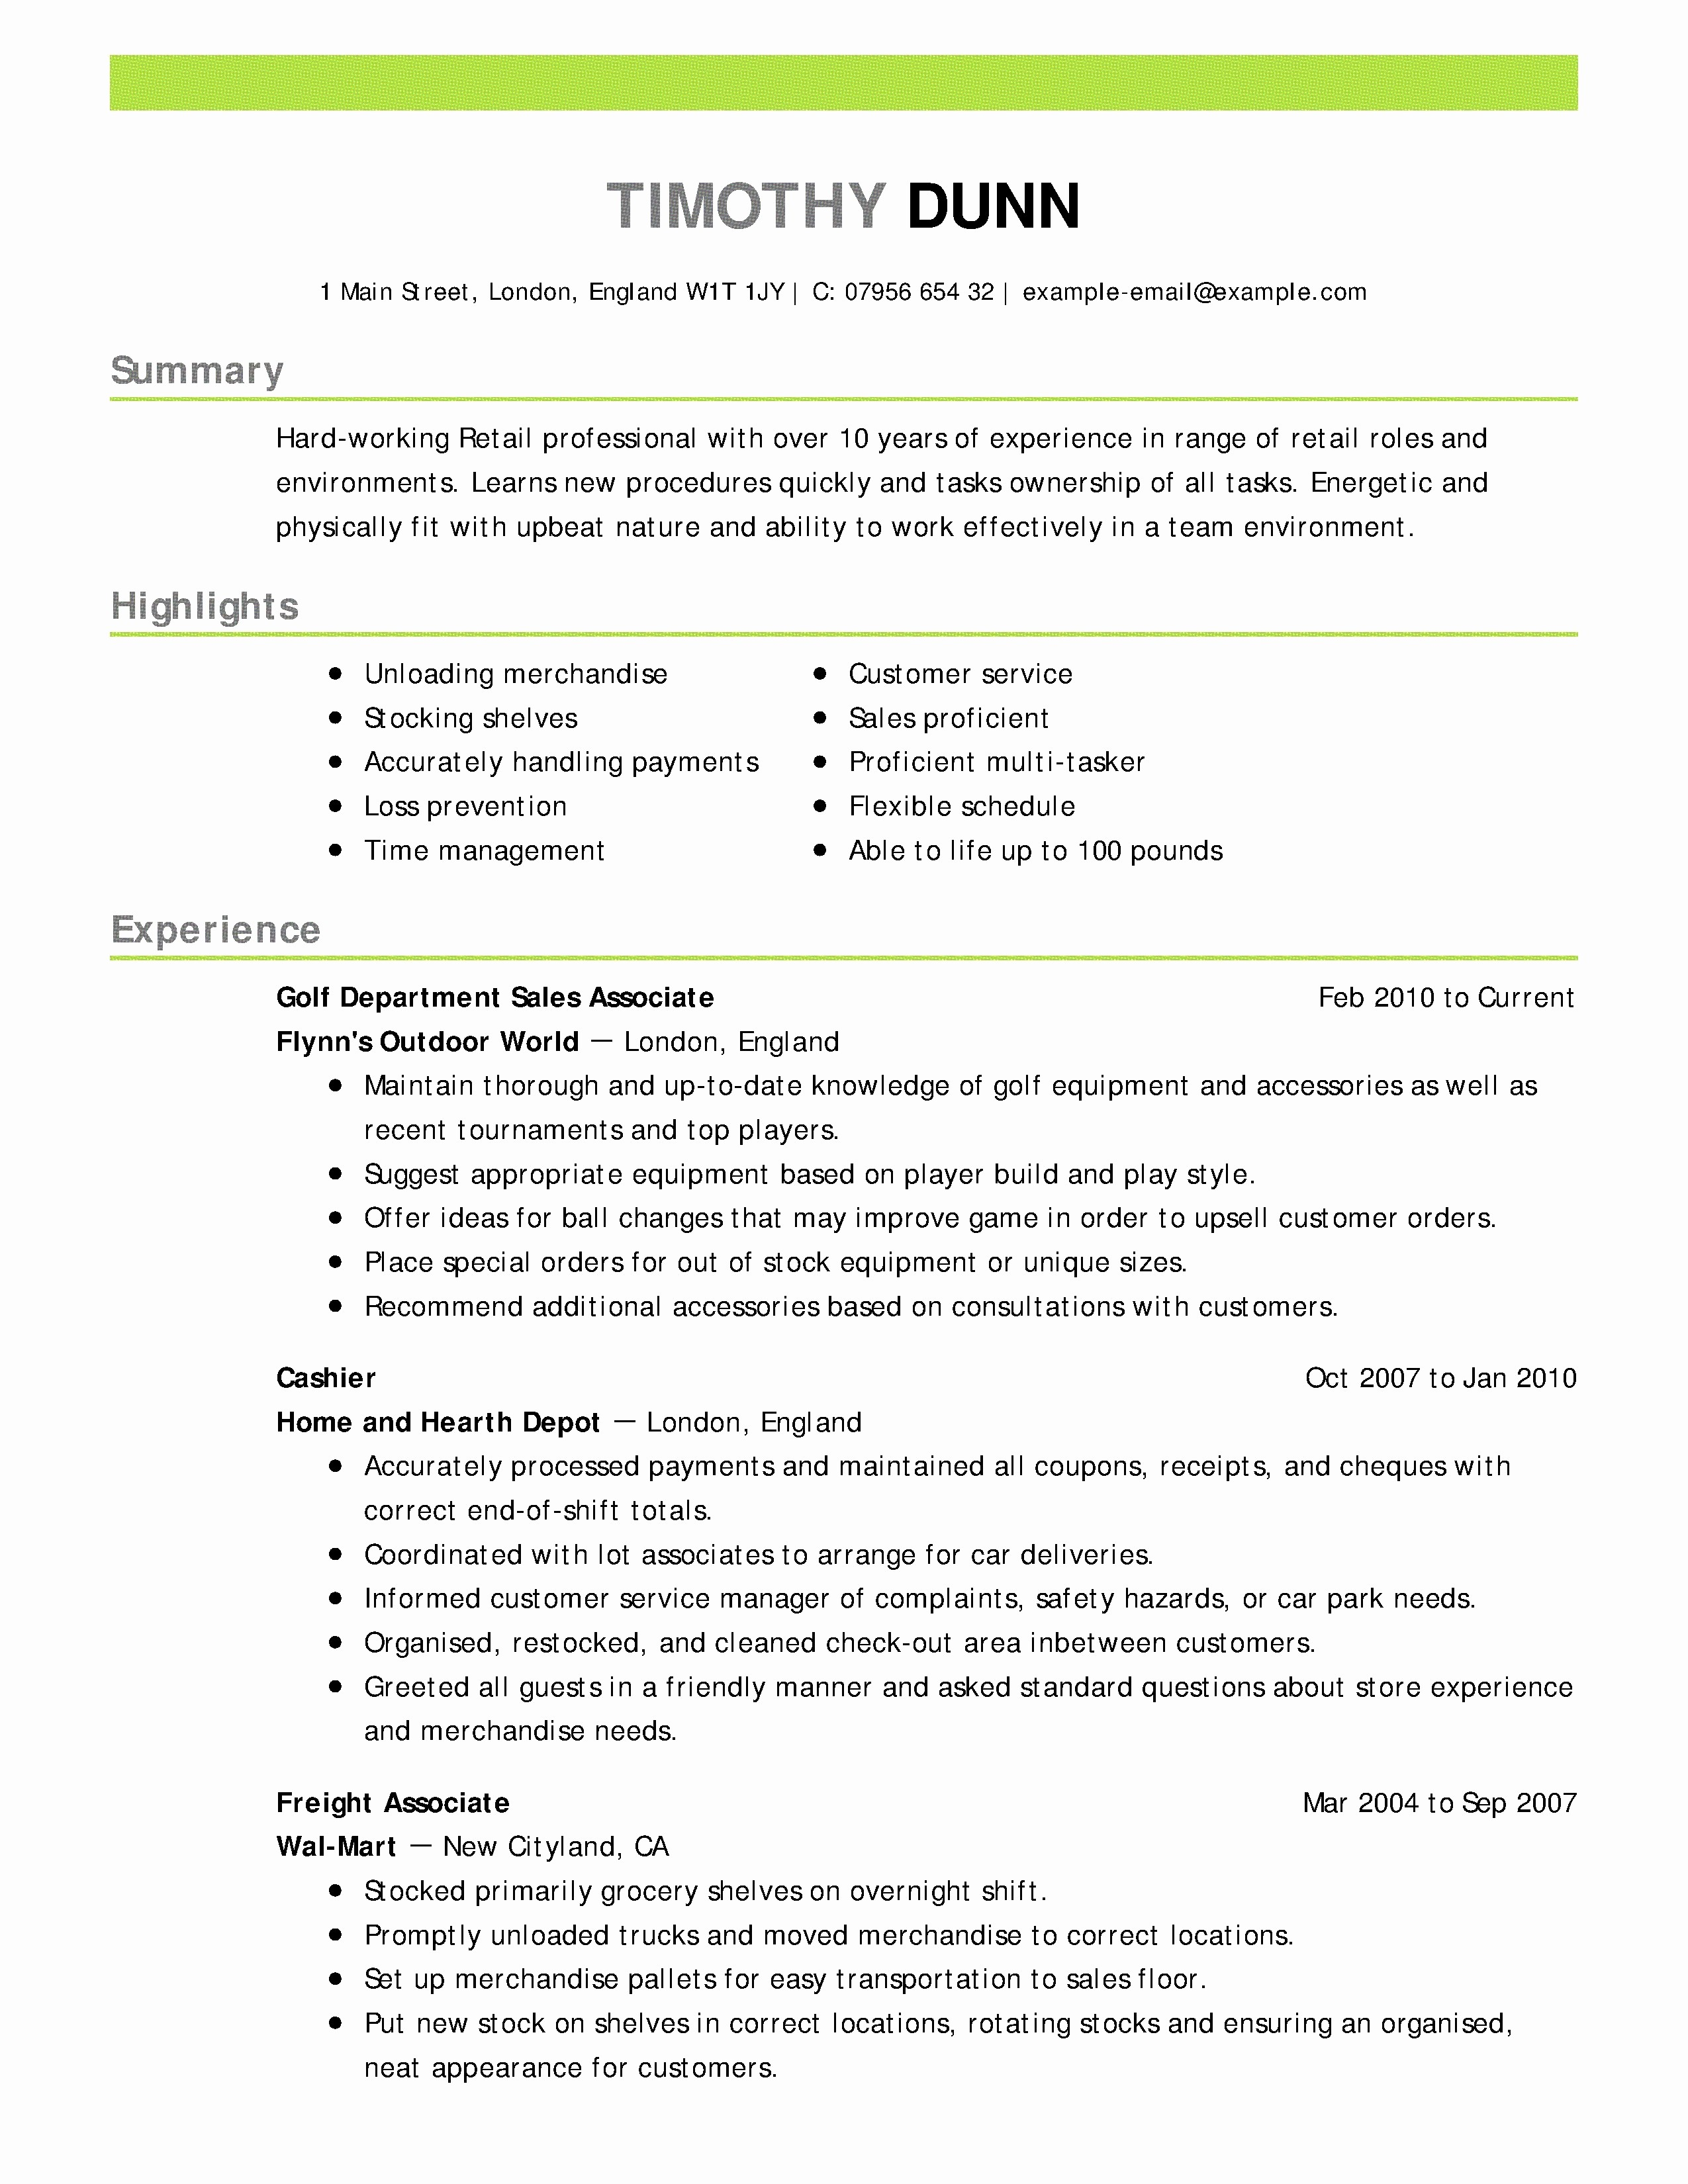 020 Short Essay Example Awesome Inspirational Stock Luxury Sample Military Resume To Civilian Examples Shocking Answer Rubric Apush About Slavery In America Questions Internal Medicine Full